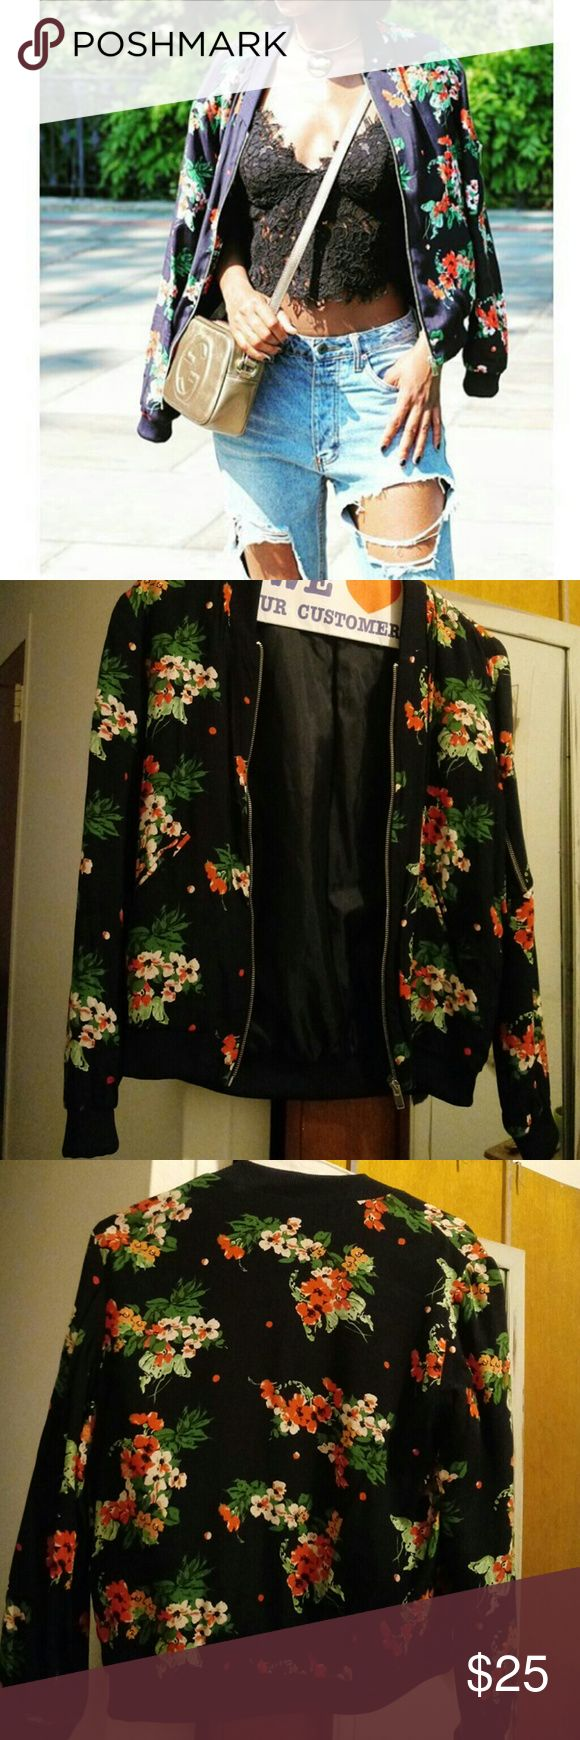 Zara bomber jacket This is a spring seasonal bomber floral jacket. Its in great and has only been uses once. Zara Jackets & Coats